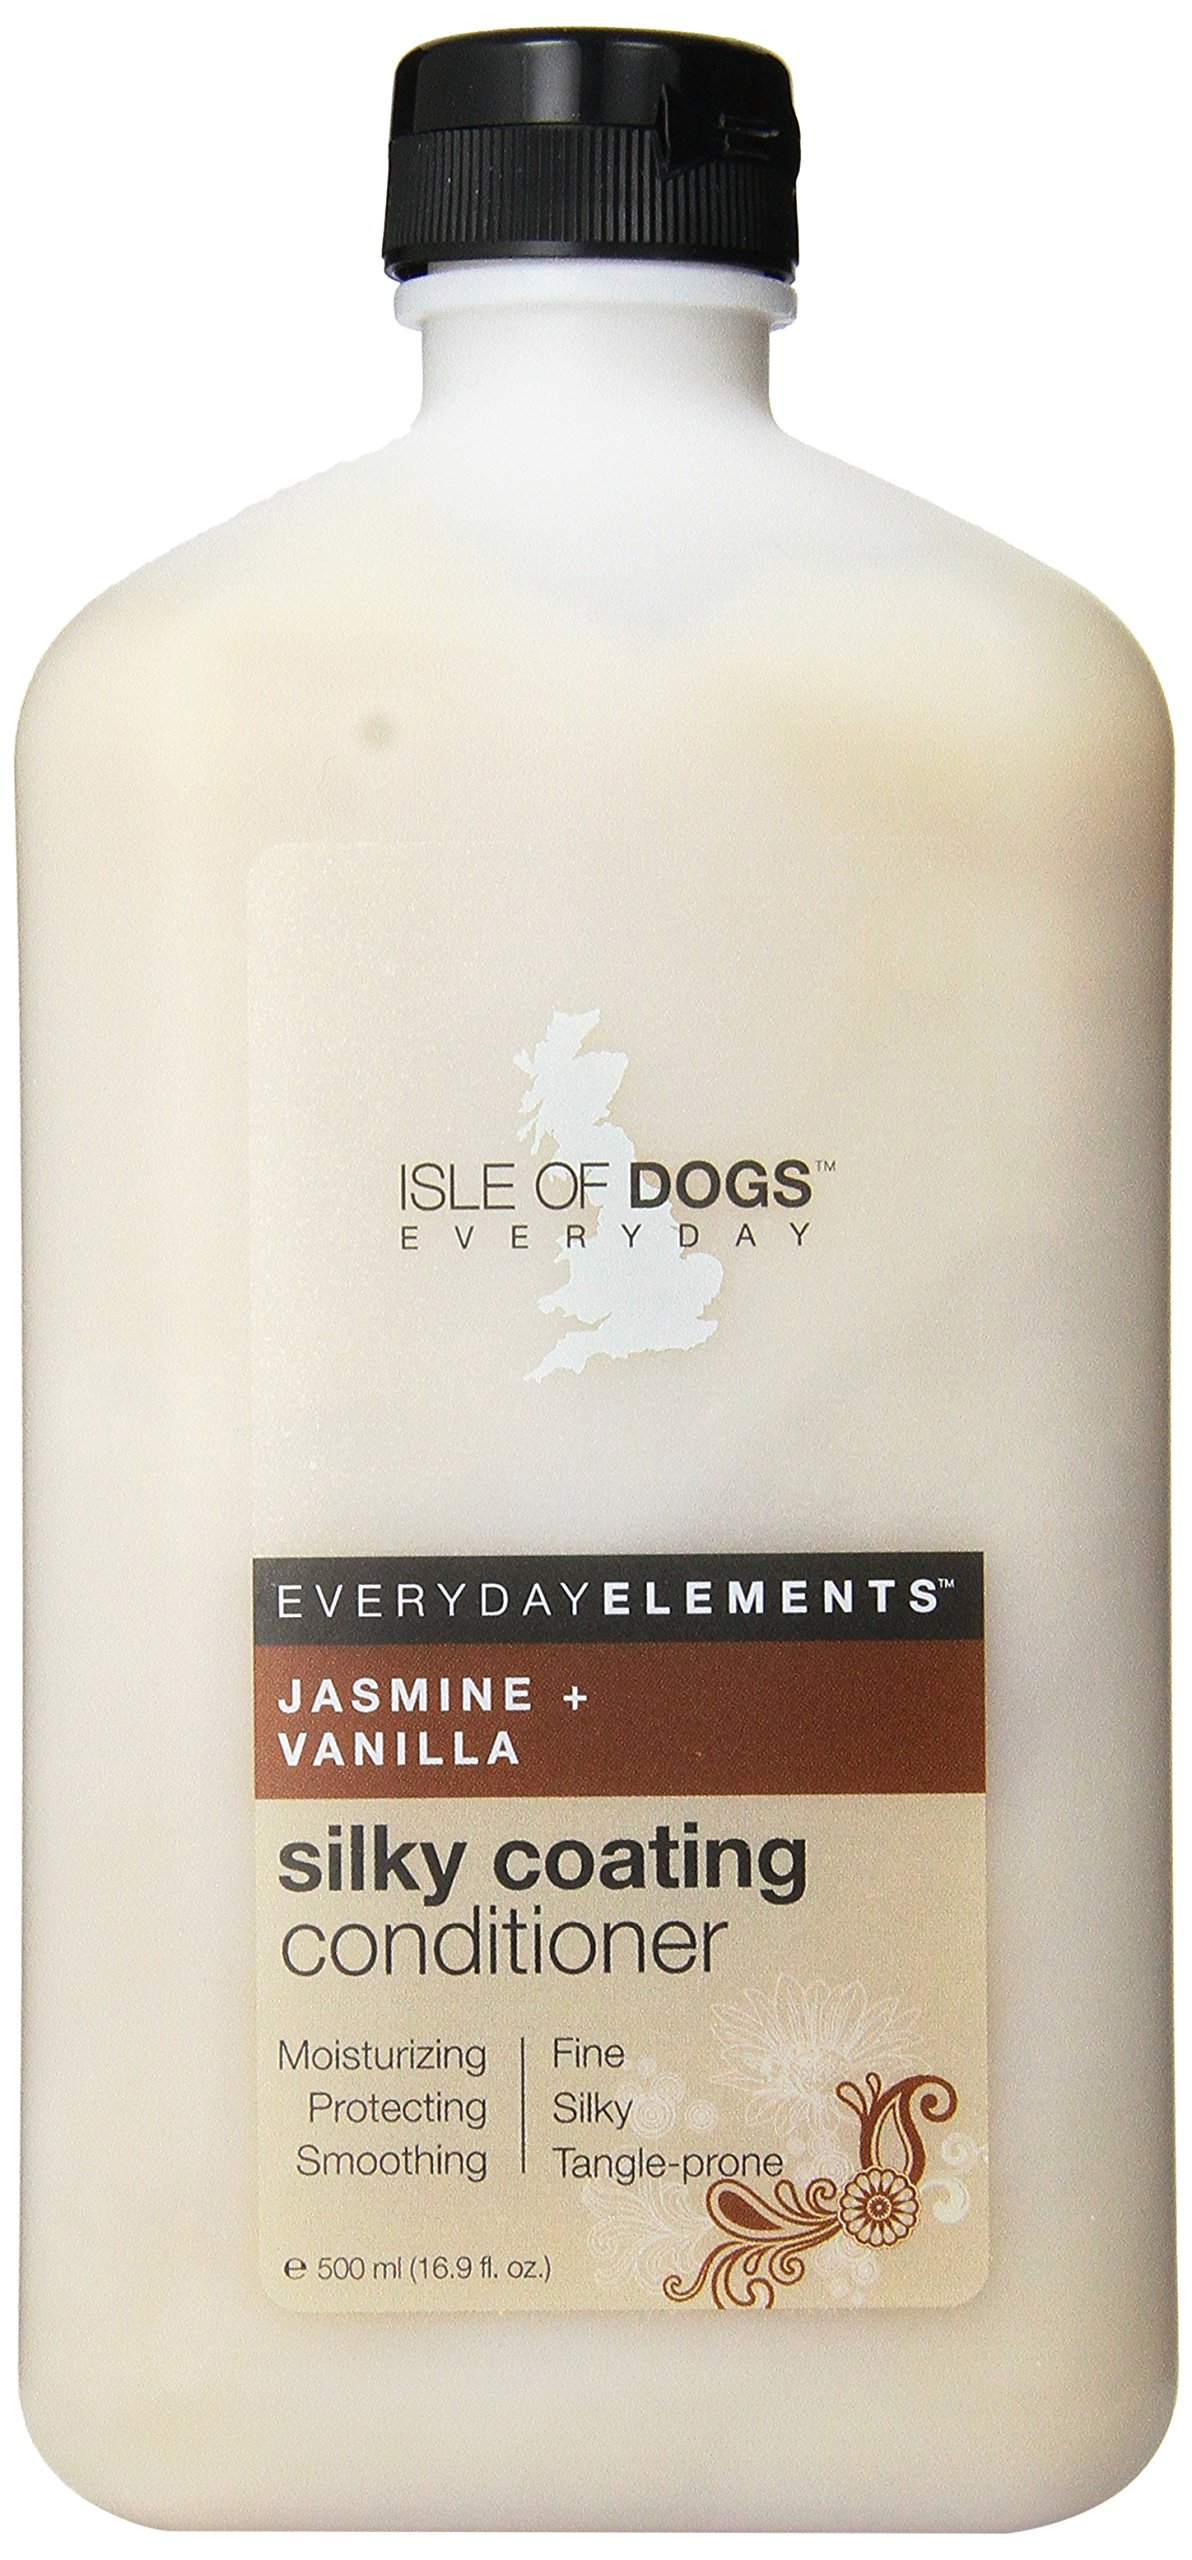 Isle of Dogs Everyday Silky Coating Dog Conditioner,Jasmine Vanilla for Fine, Silky and Tangle-Prone Hair, 16.9oz